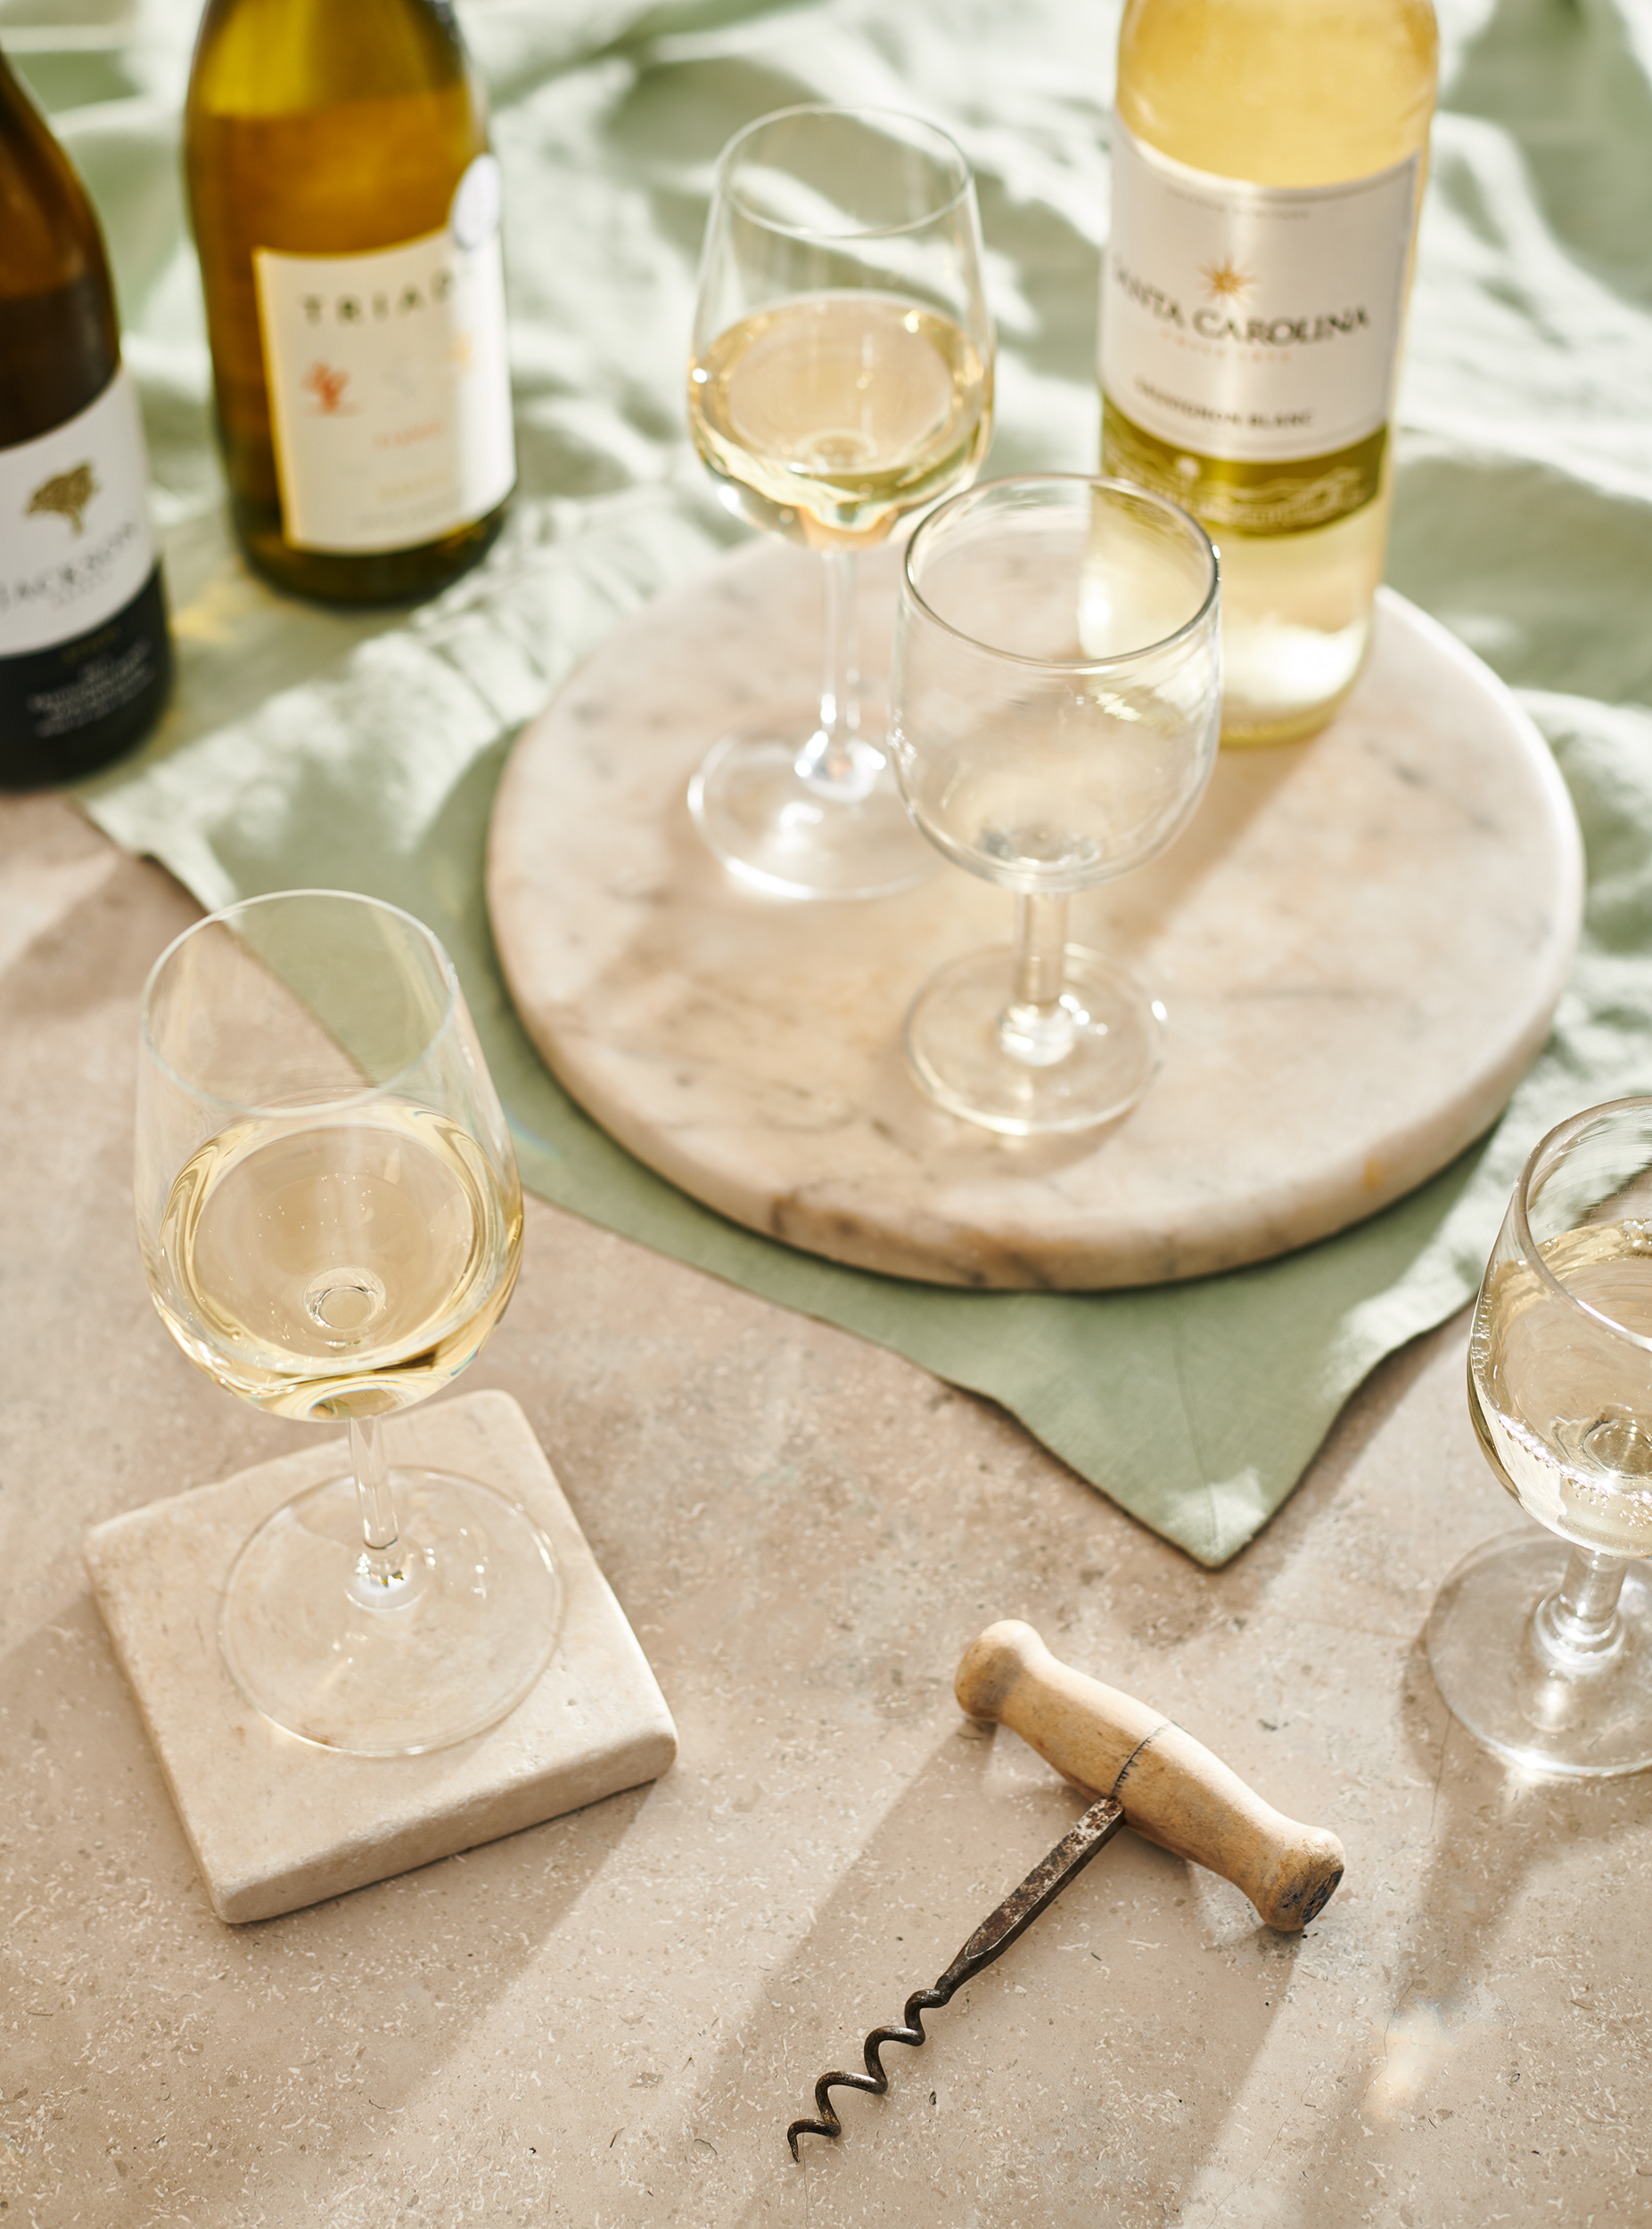 summery white wine lifestyle image, wine photography